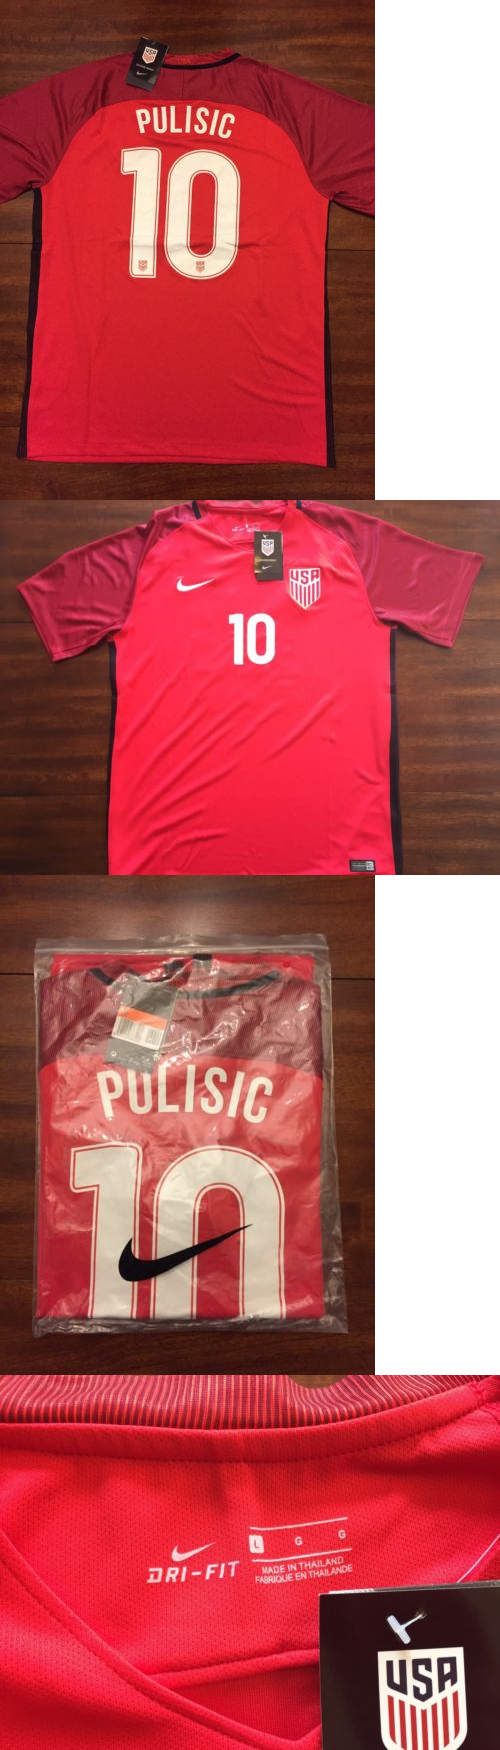 51a53f449 Soccer-National Teams 2891  Usmnt Red Usa Jersey Christian Pulisic Nike  10  Adult